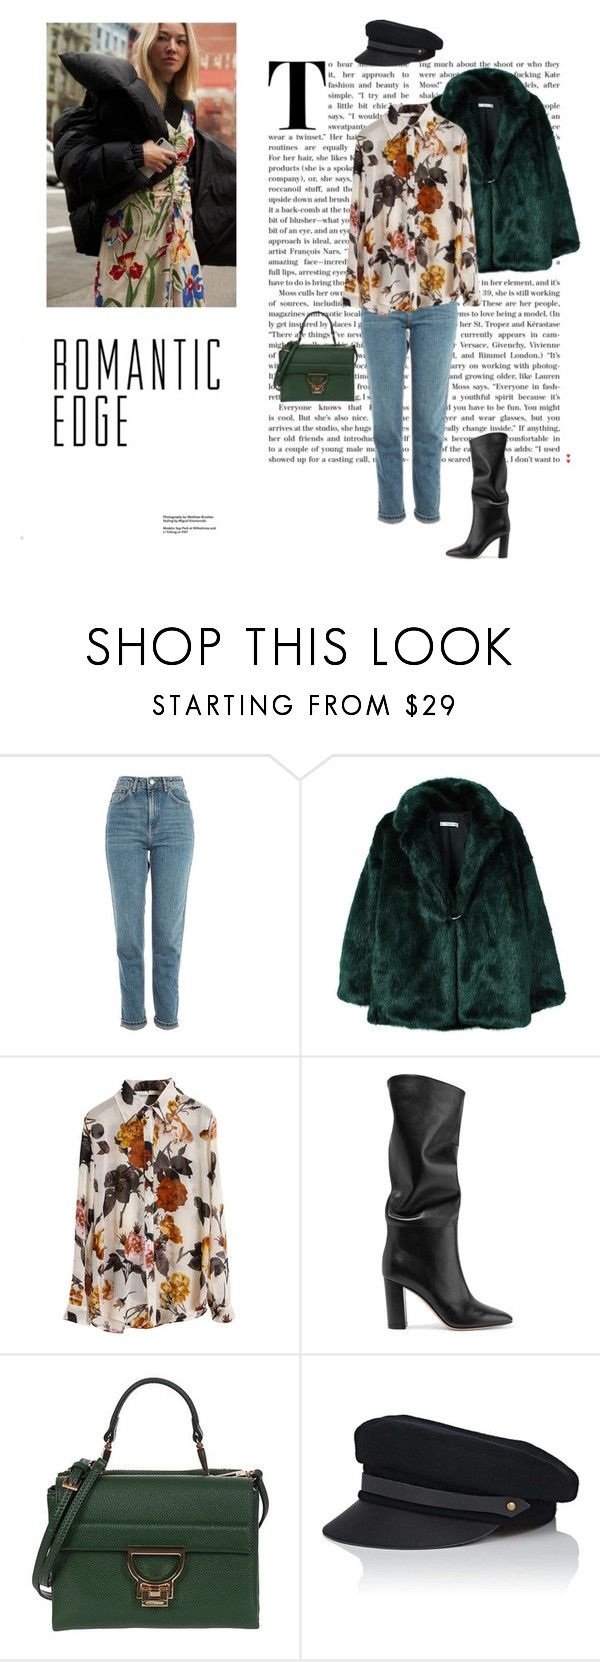 """17/02"" by dorey on Polyvore featuring Topshop, MANGO, Retrò, Gianvito Rossi, Coccinelle, Lola, StreetStyle, Flowers and pattern"